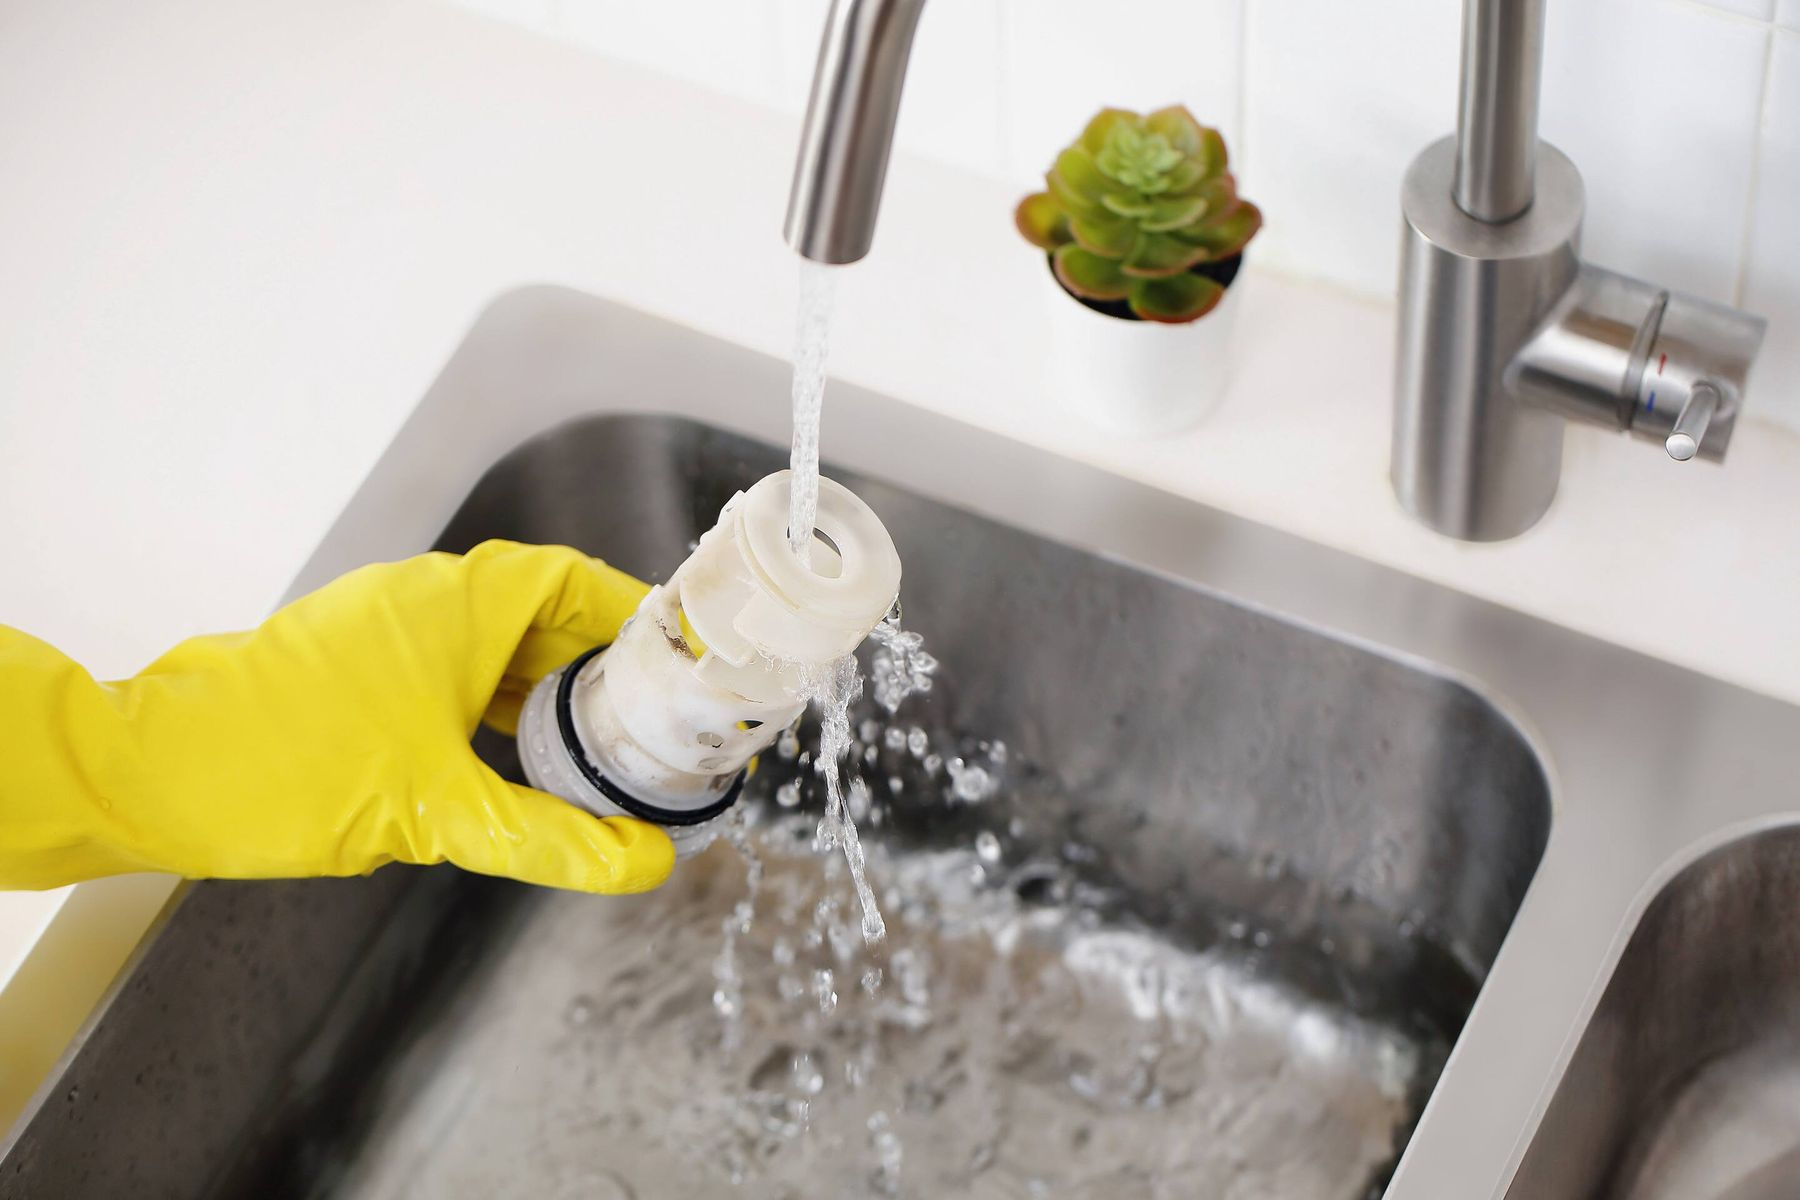 hand cleaning filter with detergent and water